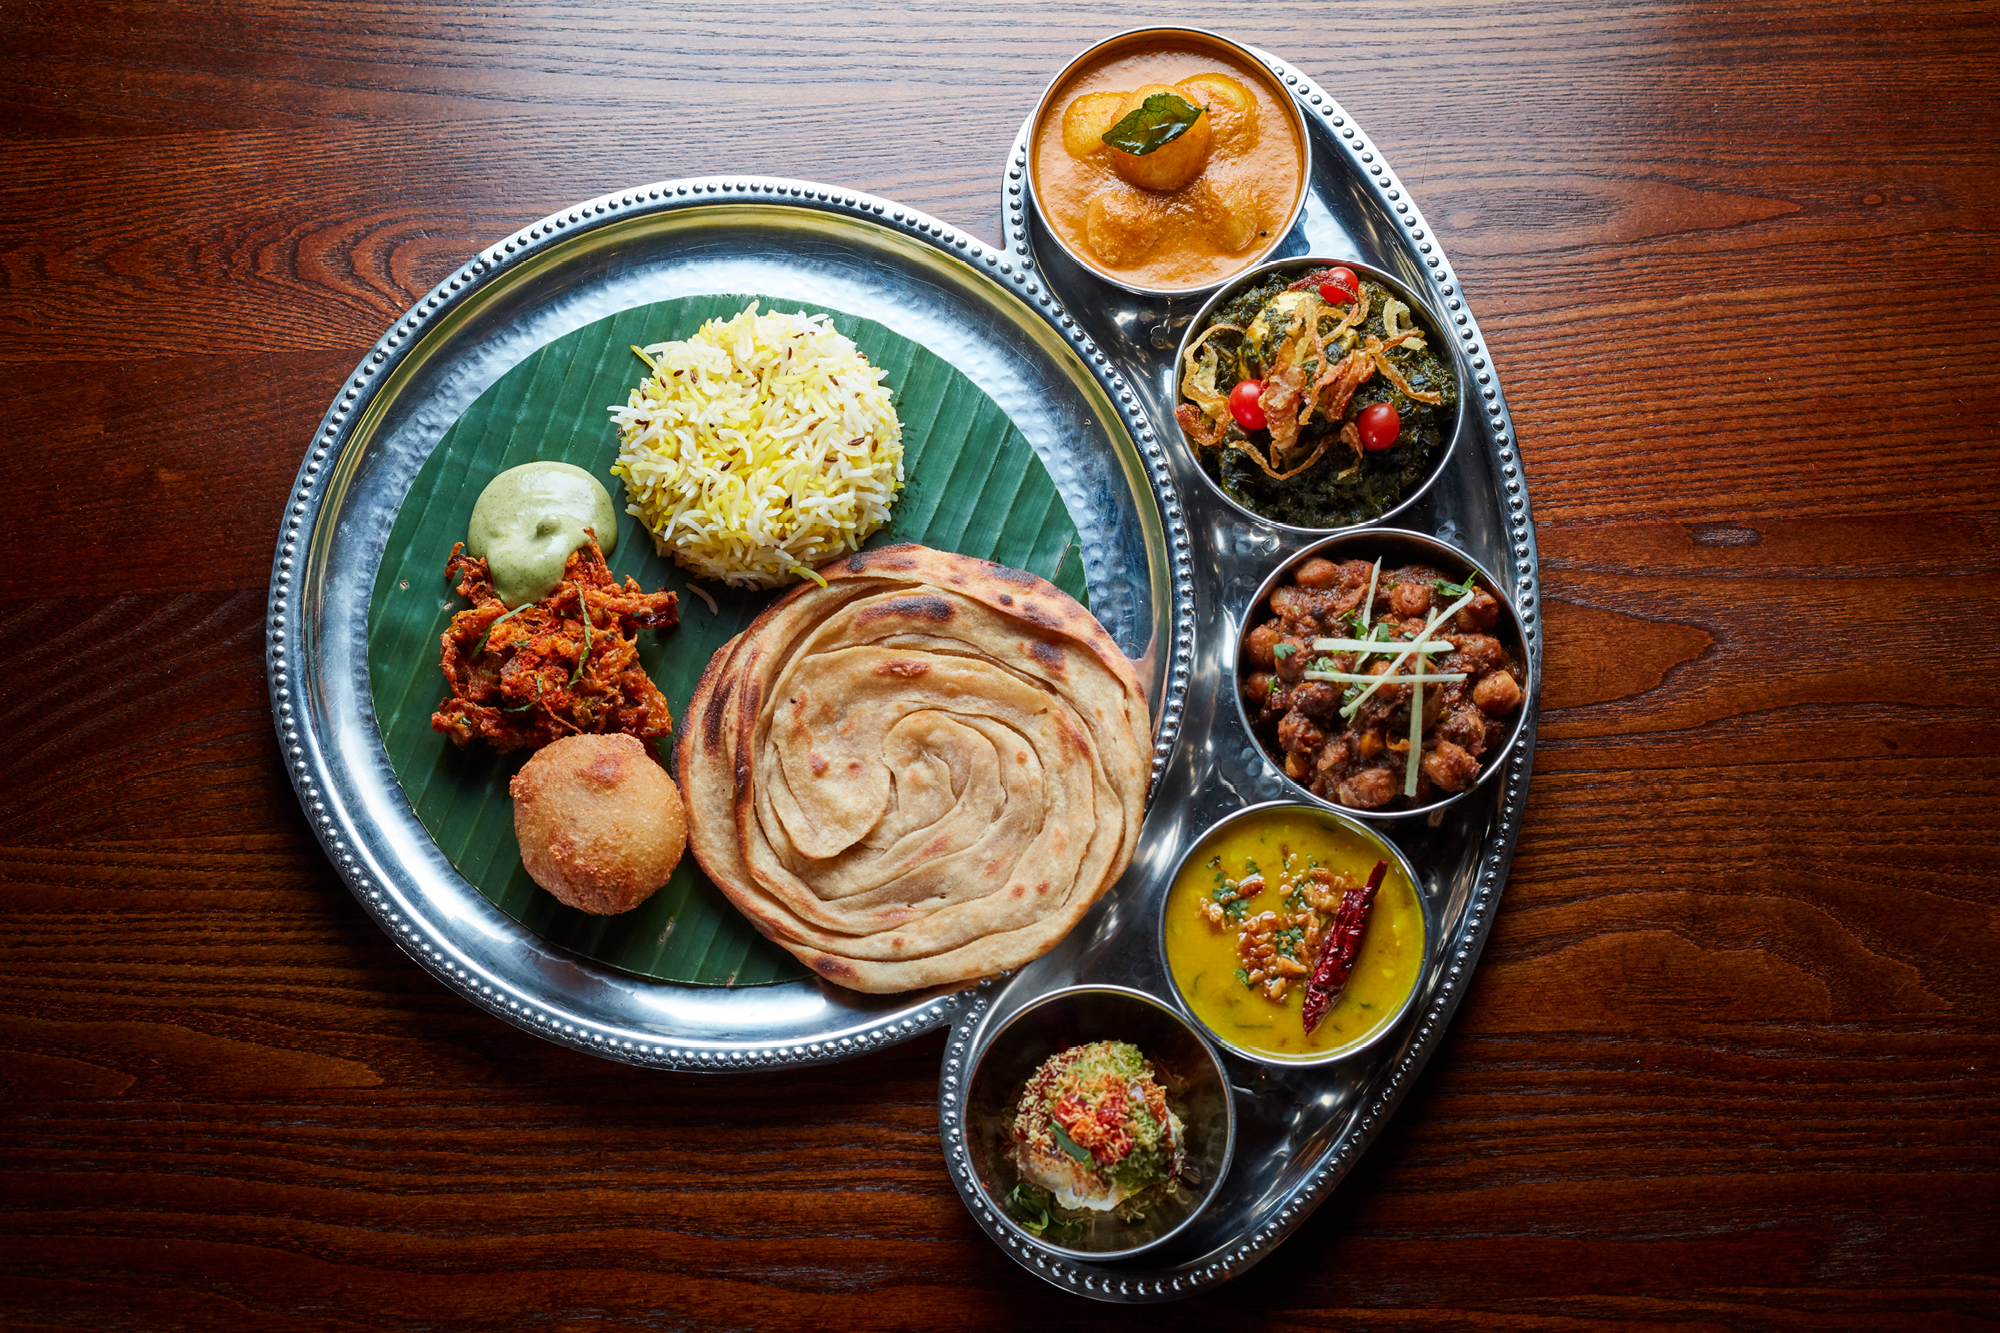 Benares@Home is delivering hot meals to the NHS as well as to your door